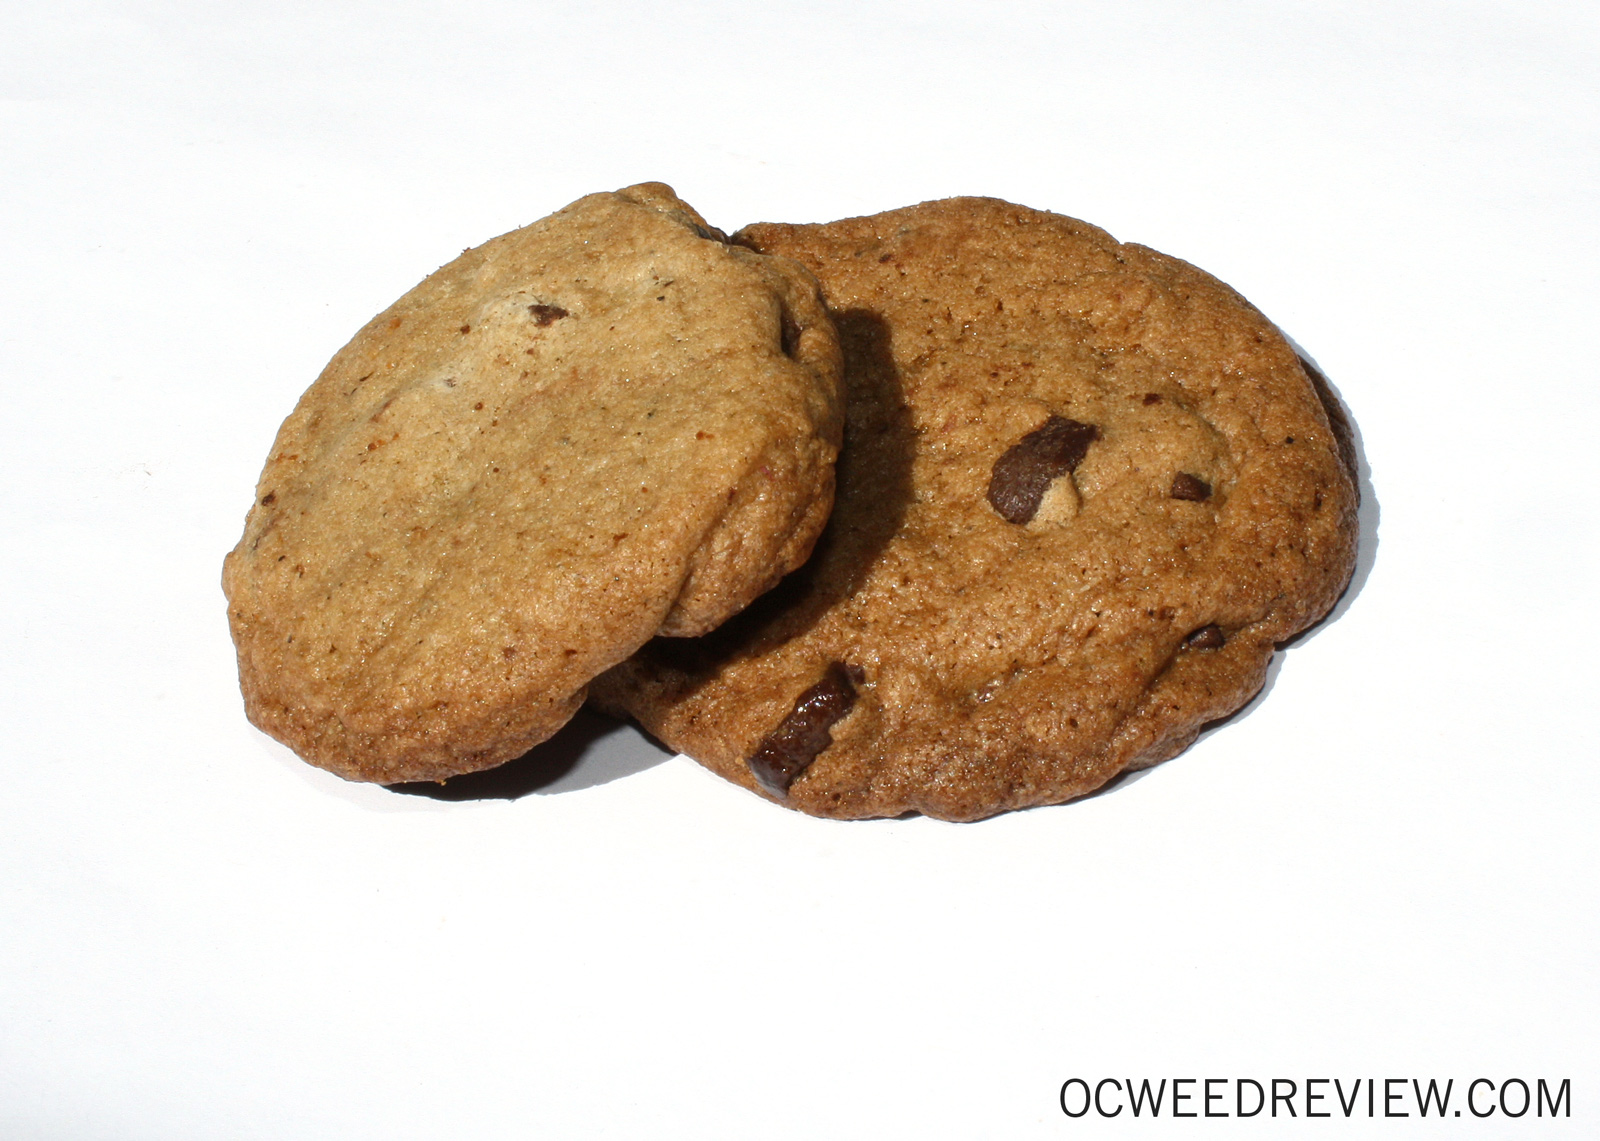 Chocolate Chip Cookies from 420 Degrees Bakeshop Edible Review